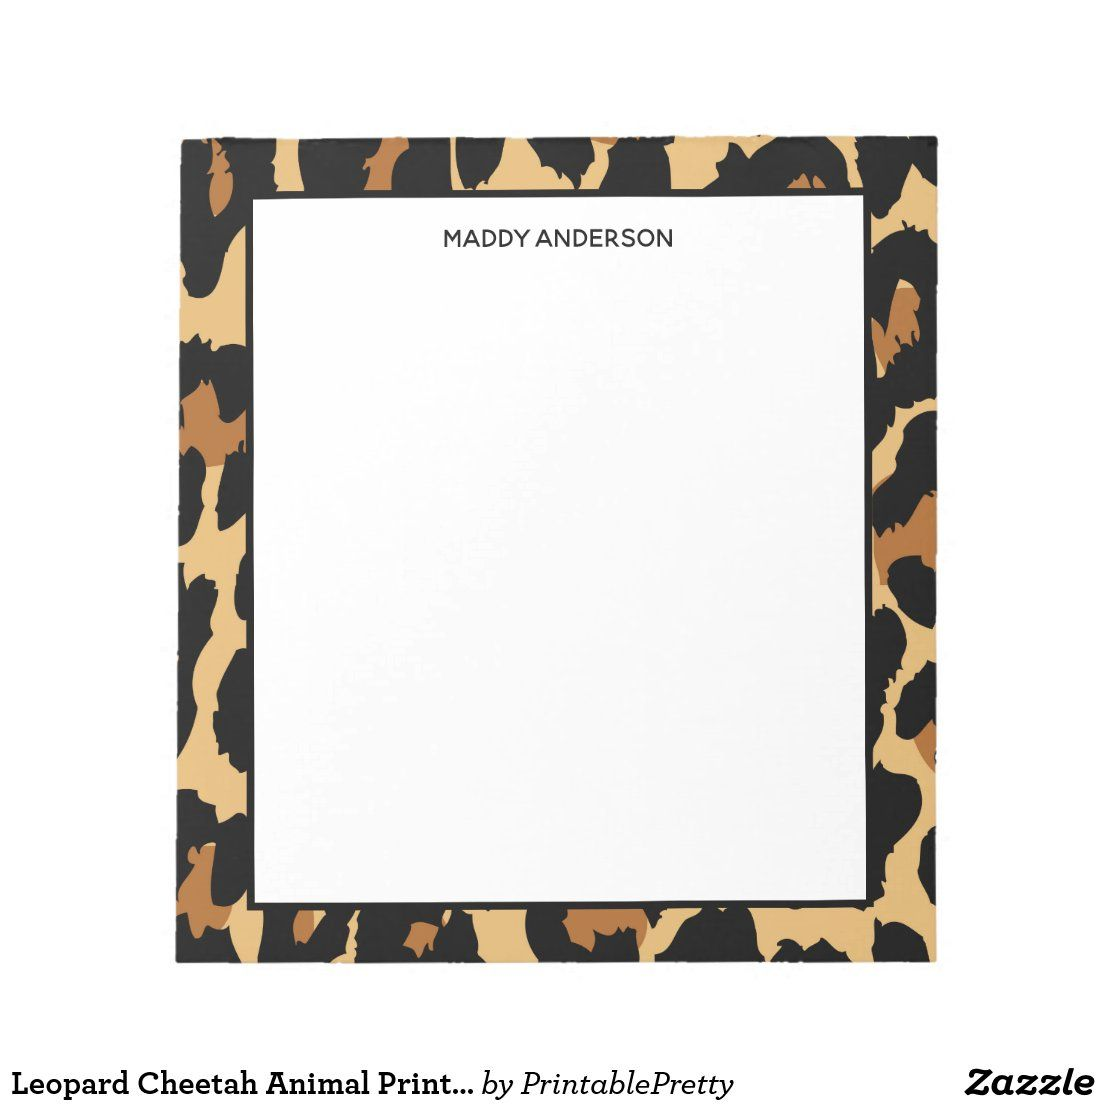 flat notecards monogrammed stationery set cheetah print stationery Animal print personalized notecards leopard print note cards